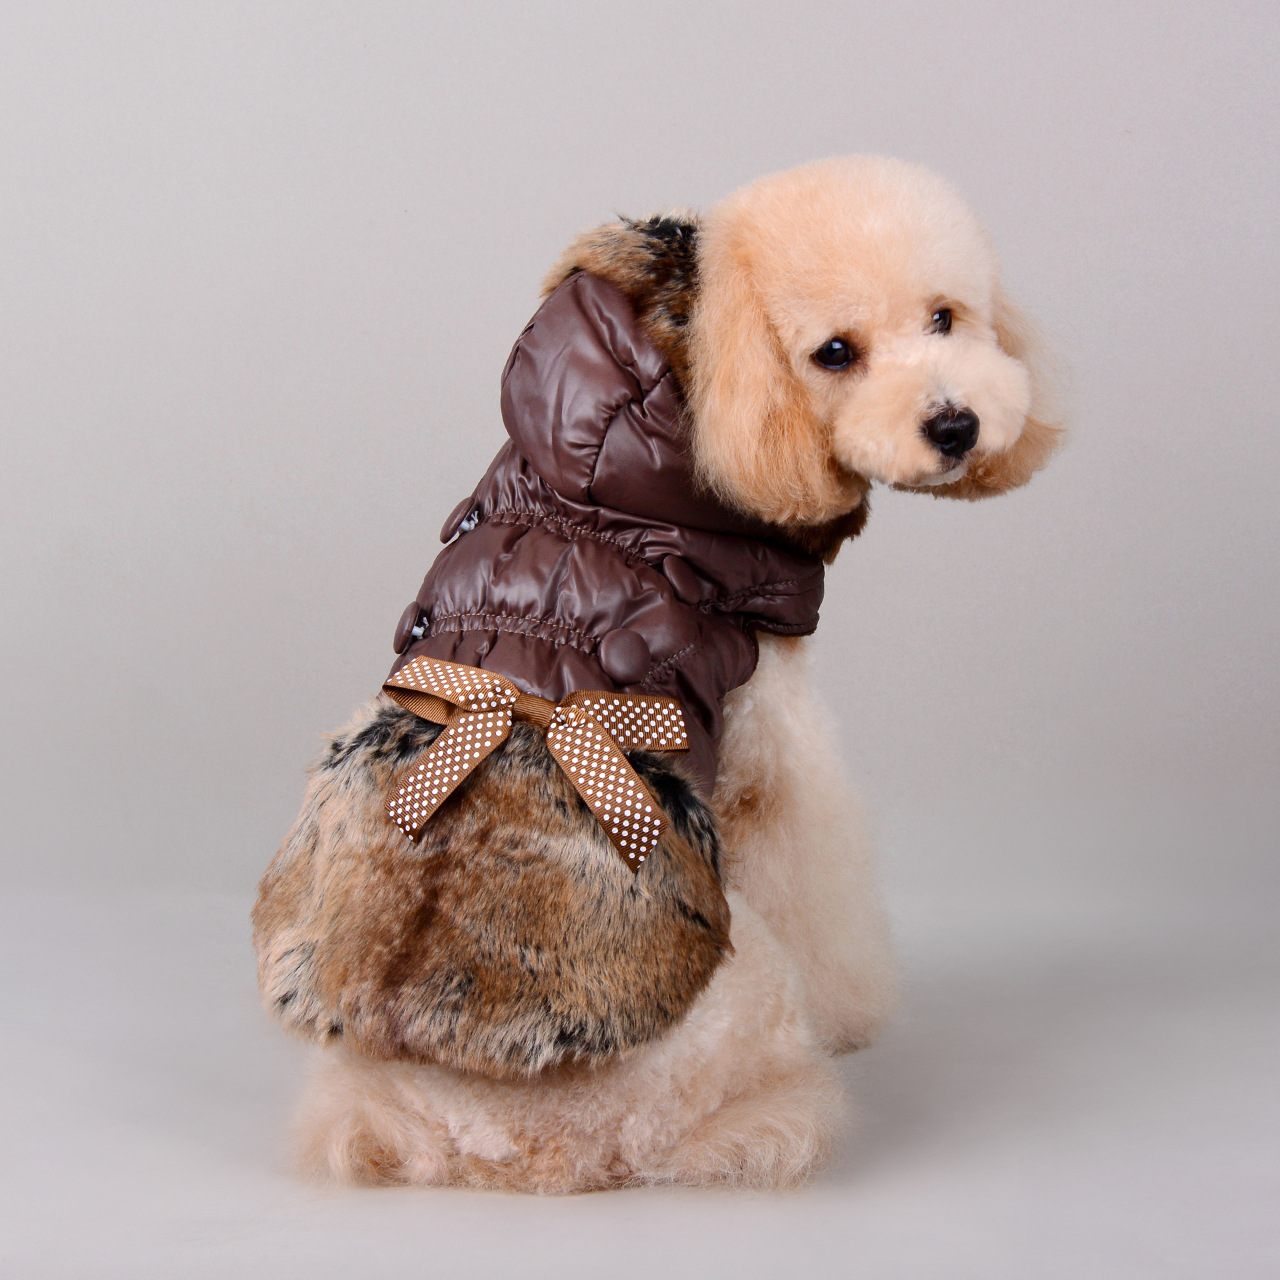 Dogs Cat Clothes Pets Apparel Puppy Dog Clothing Warm Coat Hoodie Jacket